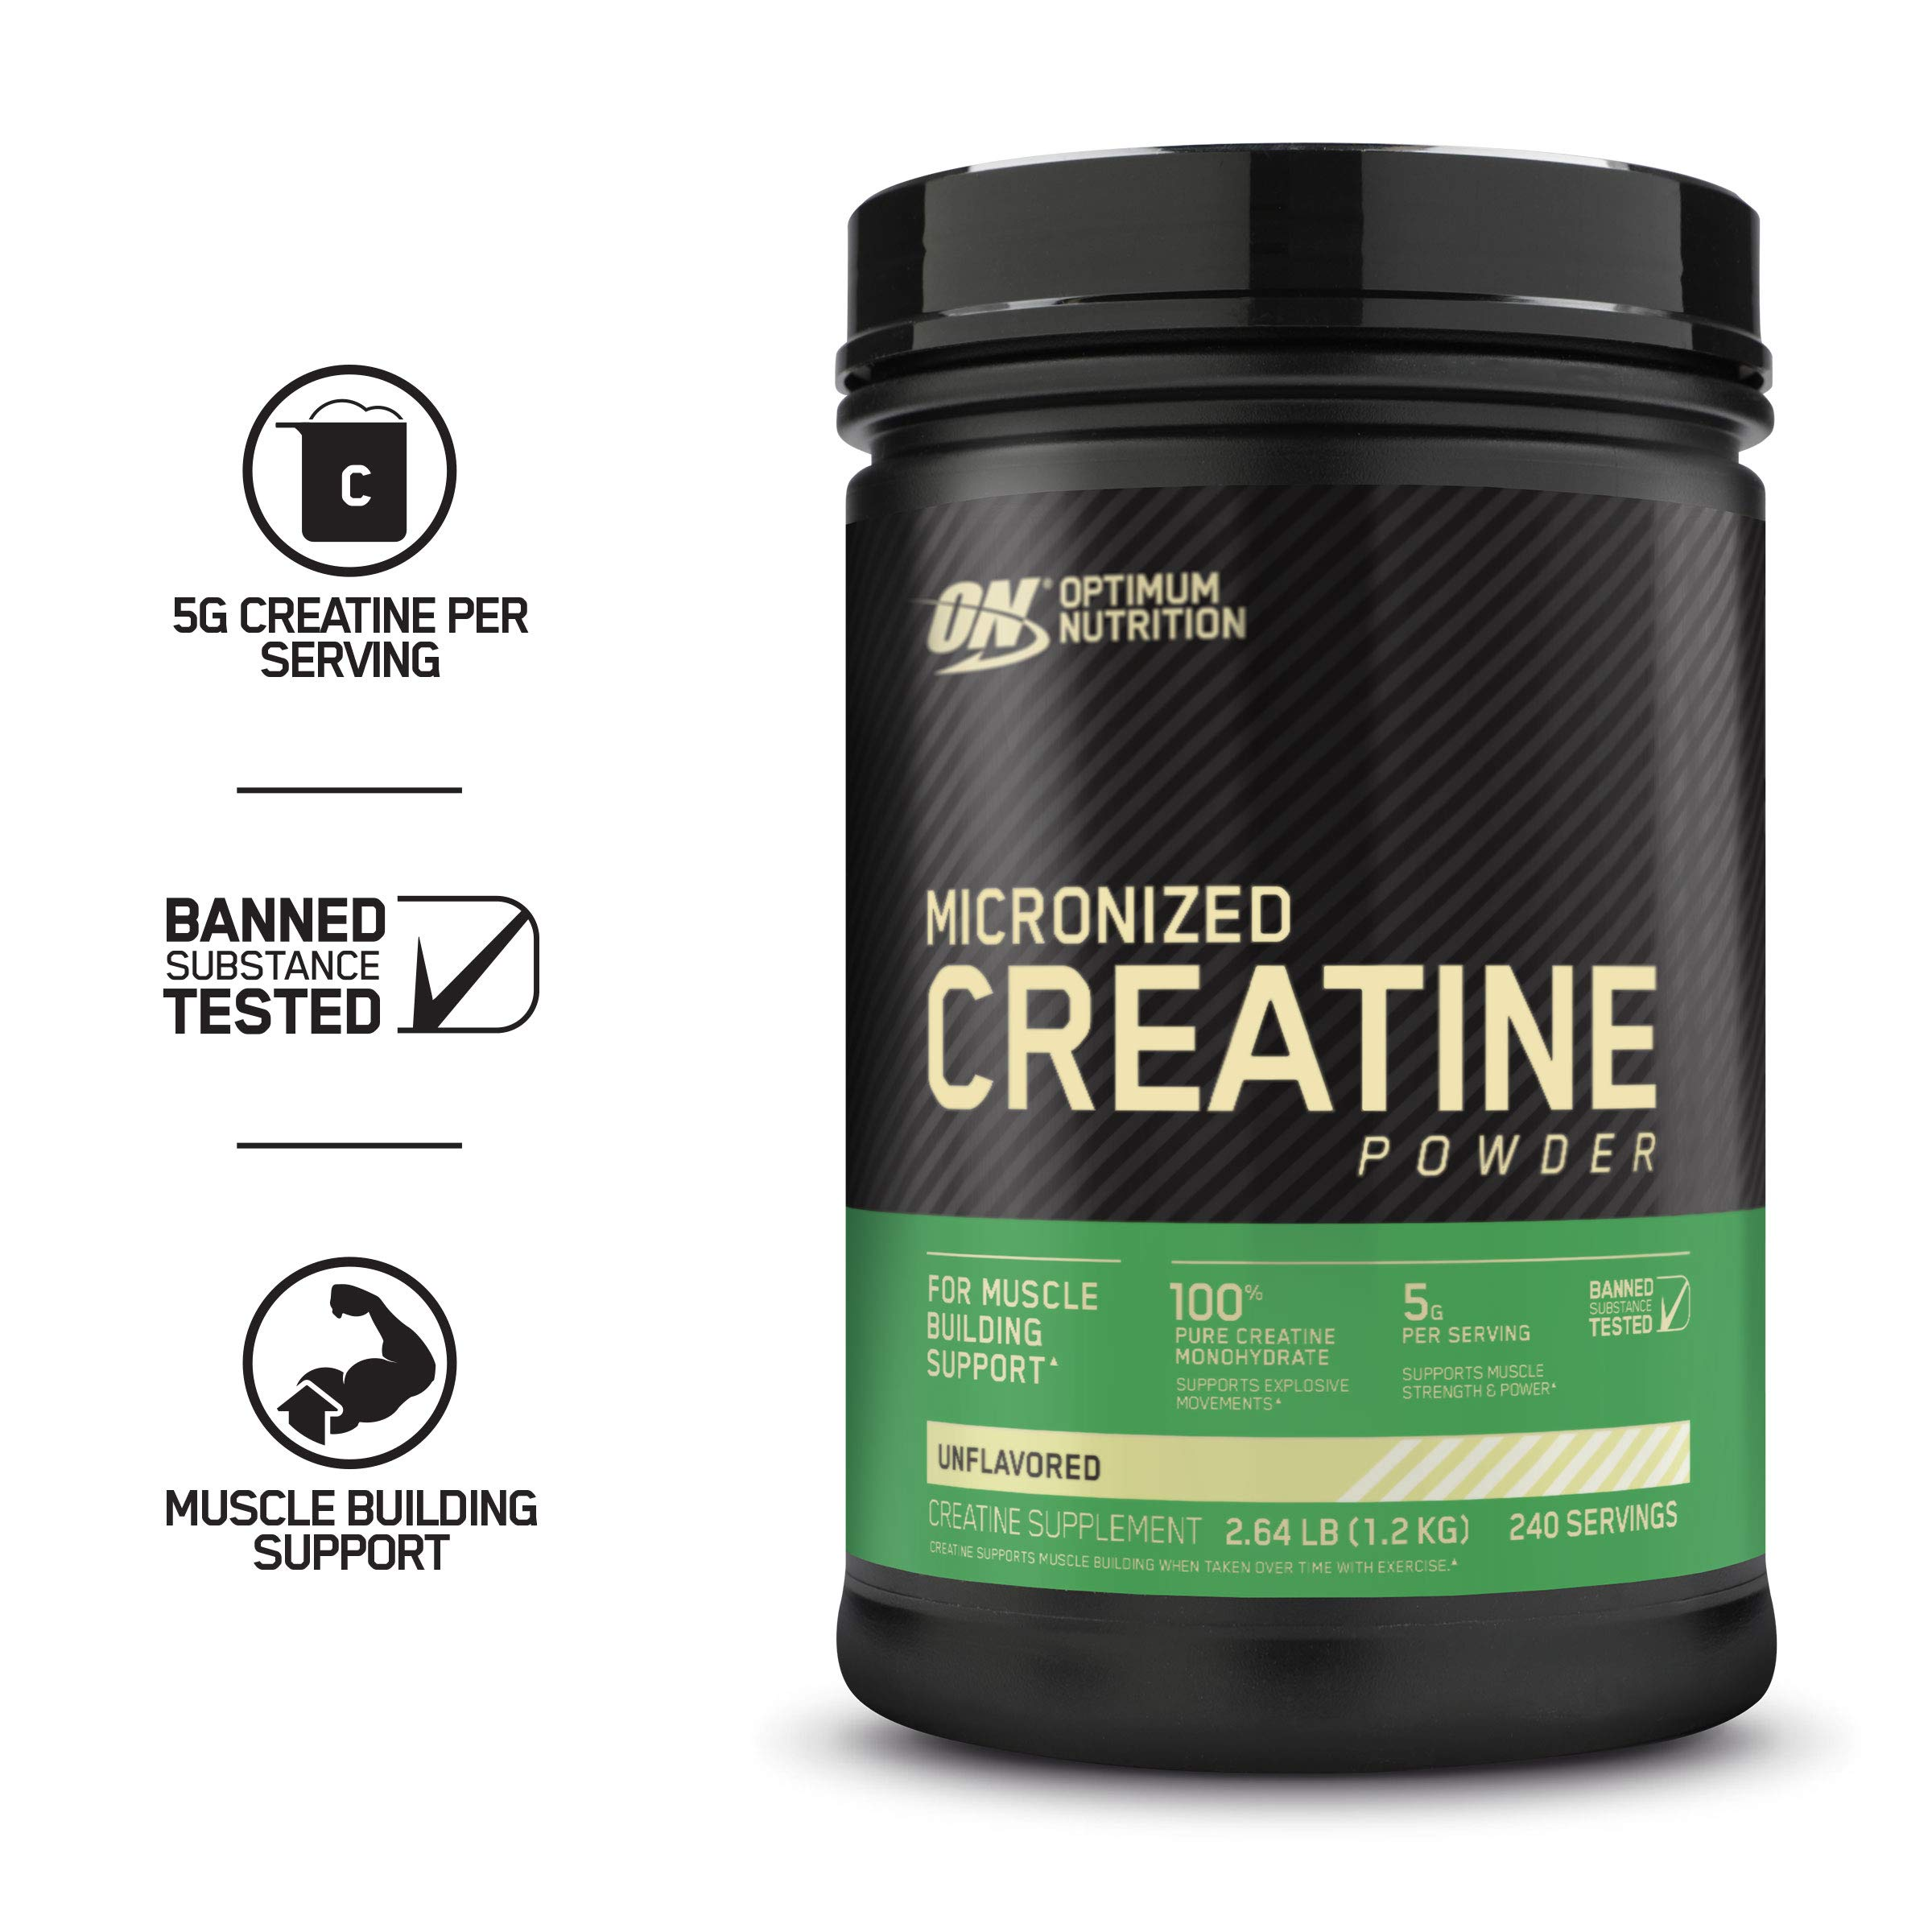 Optimum Nutrition Micronized Creatine Monohydrate Powder, Unflavored, Keto Friendly, 42.24 Ounce (Packaging May Vary) by Optimum Nutrition